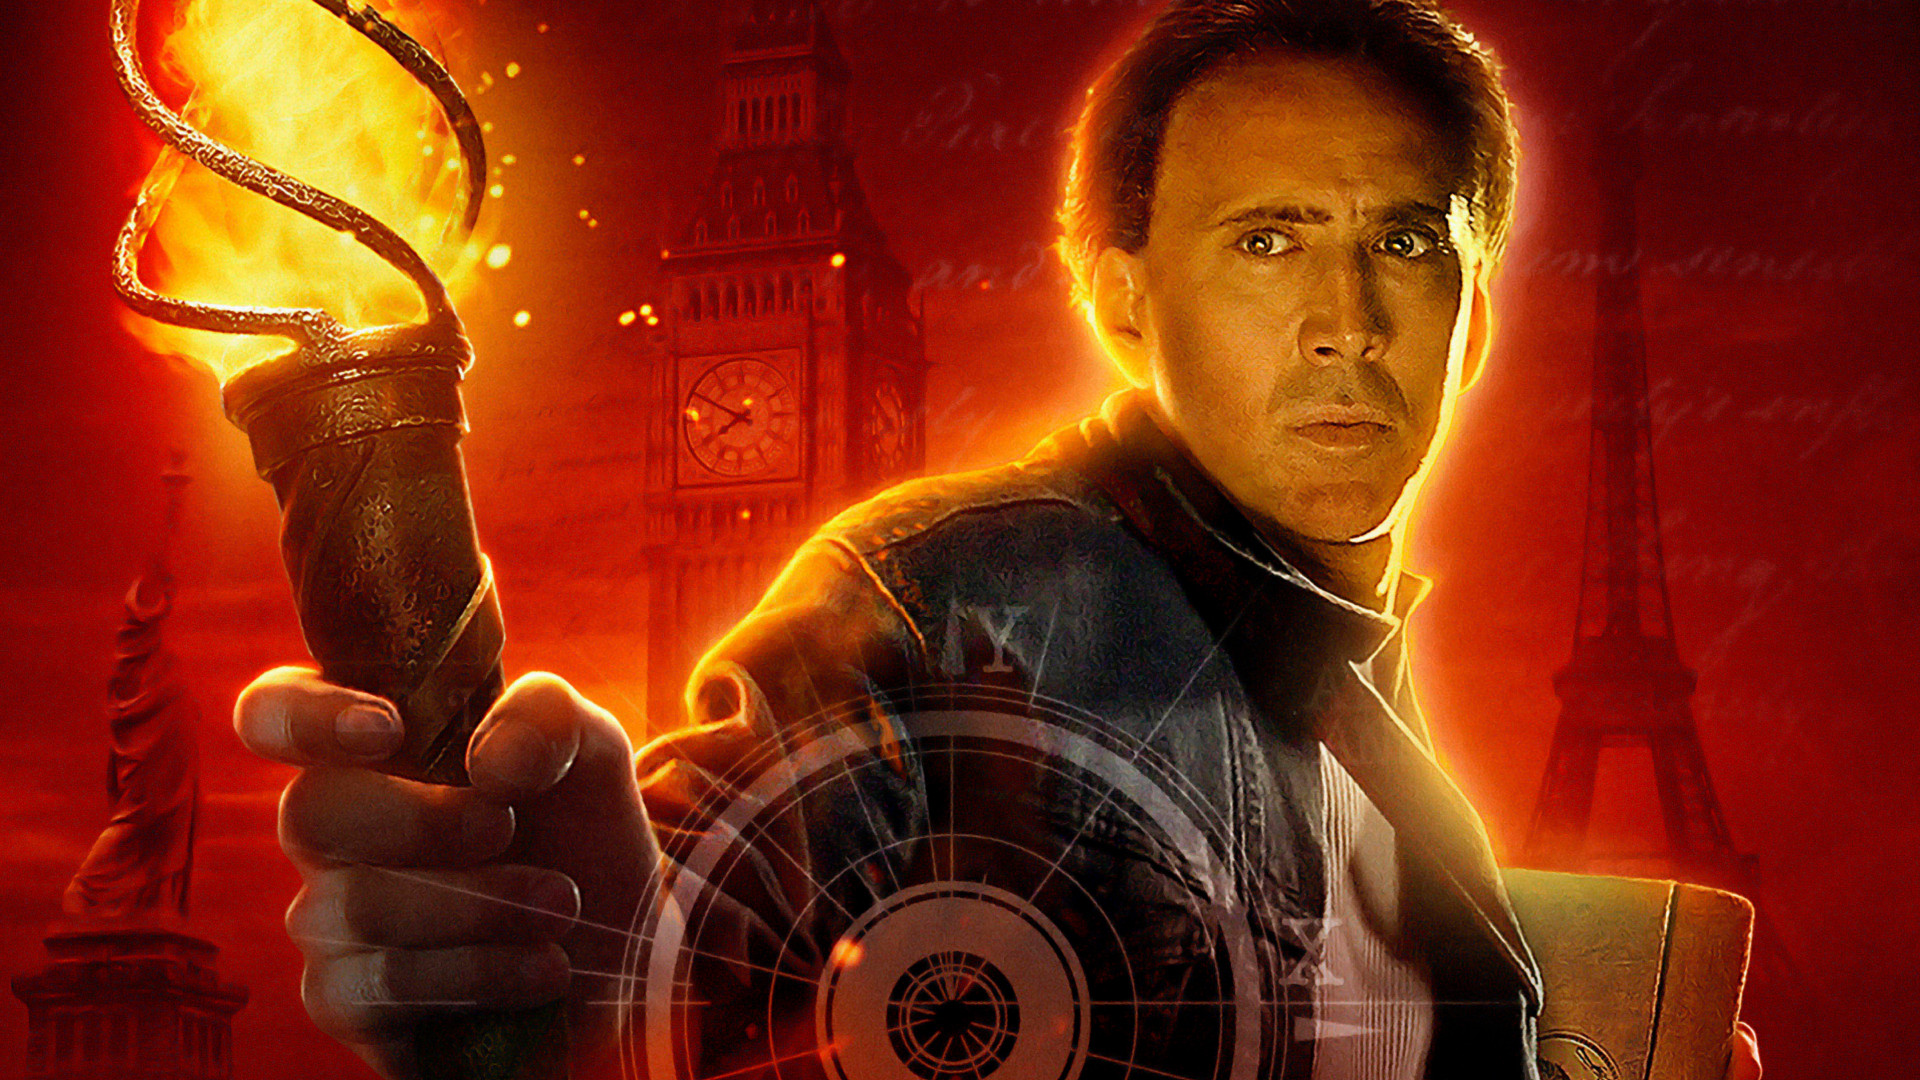 National Treasure 3 Release Date Cast Plot And Everything Fans Need To Know About The Series Finance Rewind